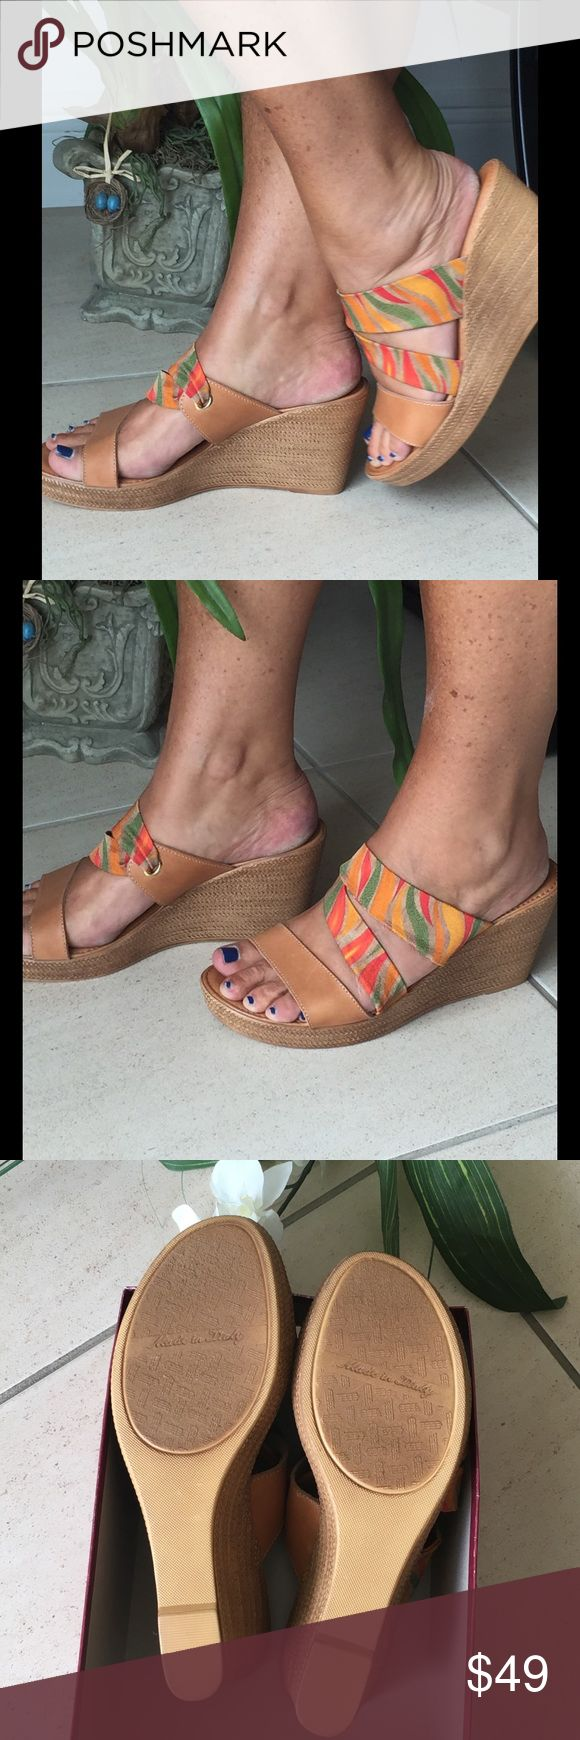 Tan, orange, pink & green espadrille wedge, sz 9.5 Super comfy, vibrant multi color espadrille wedges. Sid s look like straw, but are actually plastic.  Heal is 4 & 1/2 inches, platform at toe is 1 inch. Super cute with jeans, shorts, etc. New, never worn, box but no tags. Size 9.5 but comfortable for my size 10 feet. Shoes Espadrilles